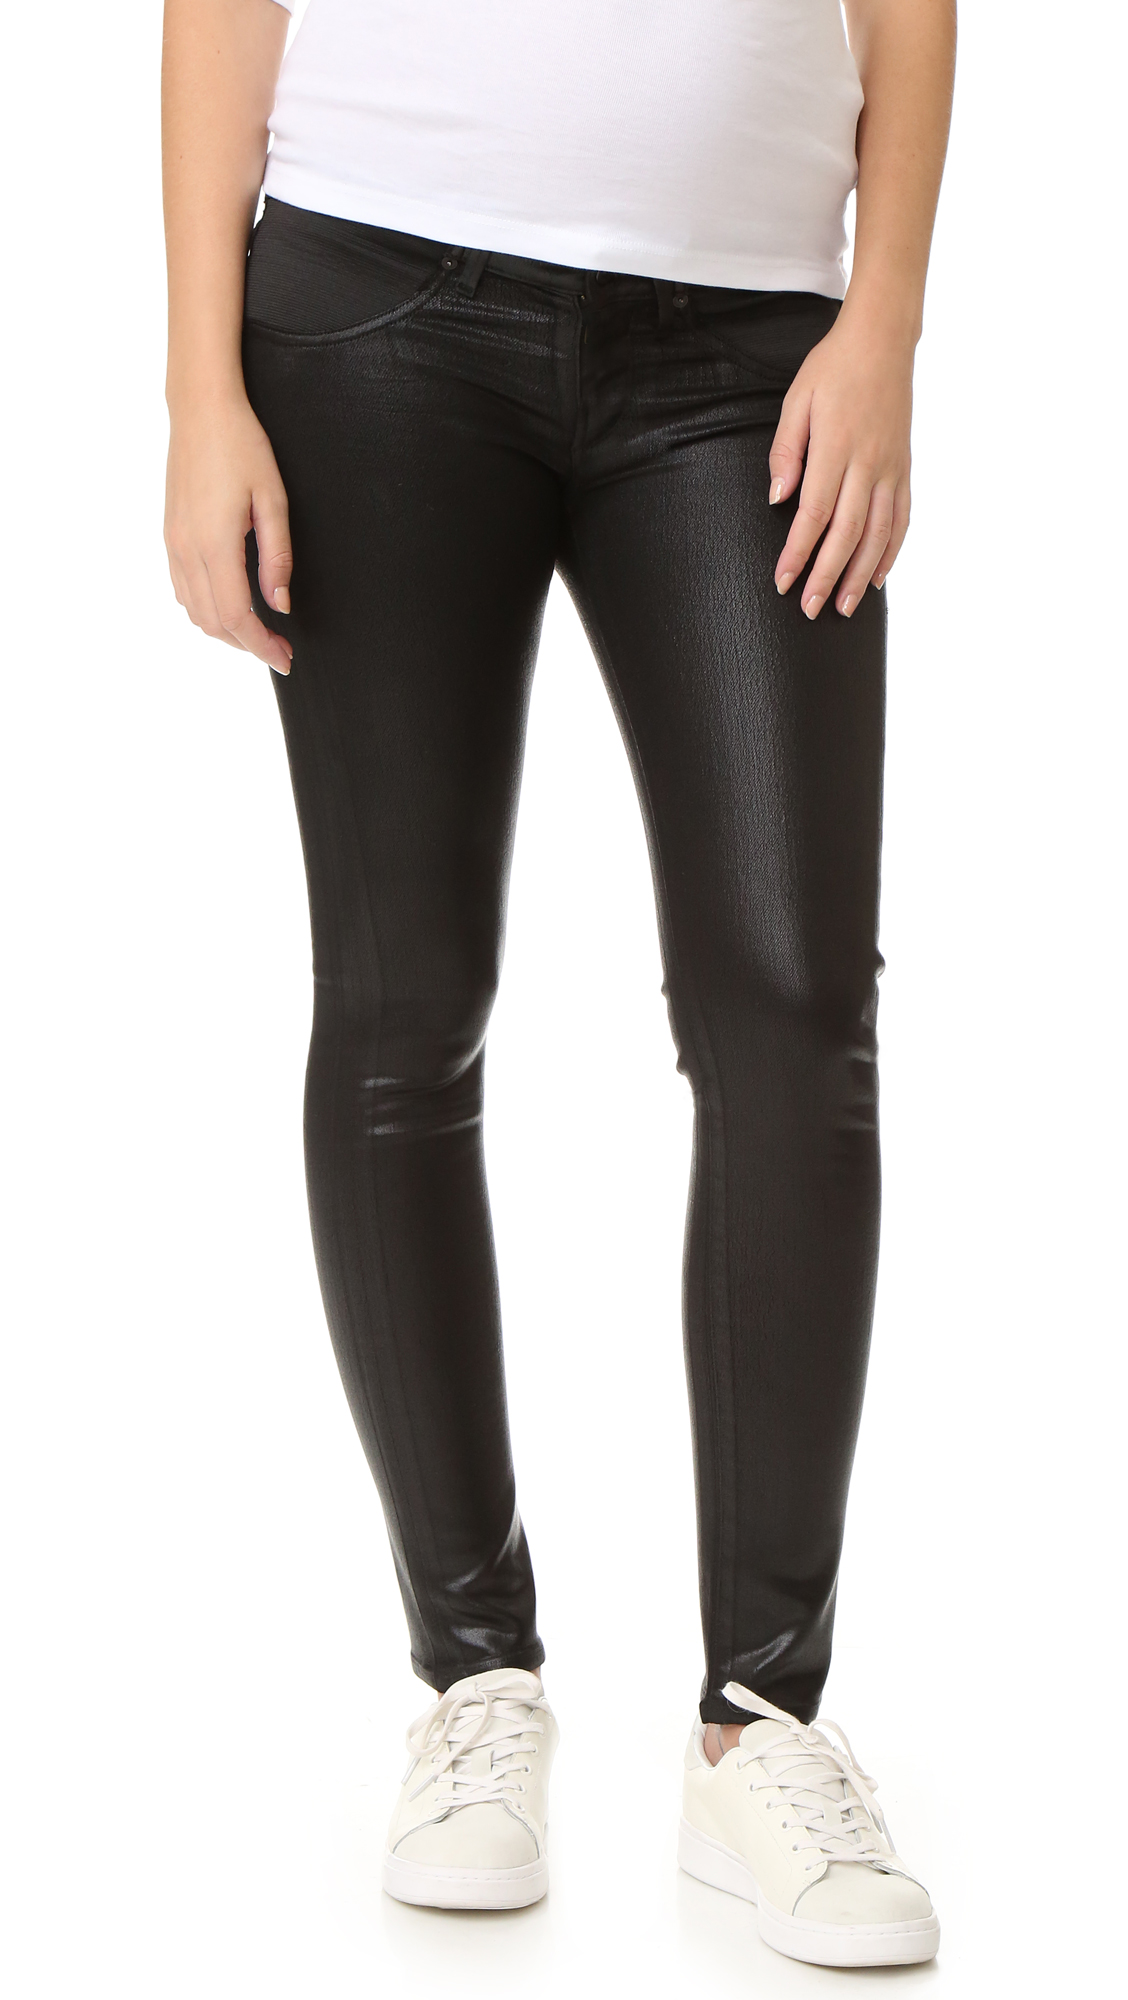 Citizens of Humanity Racer Skinny Maternity Jeans - Black Leatherette